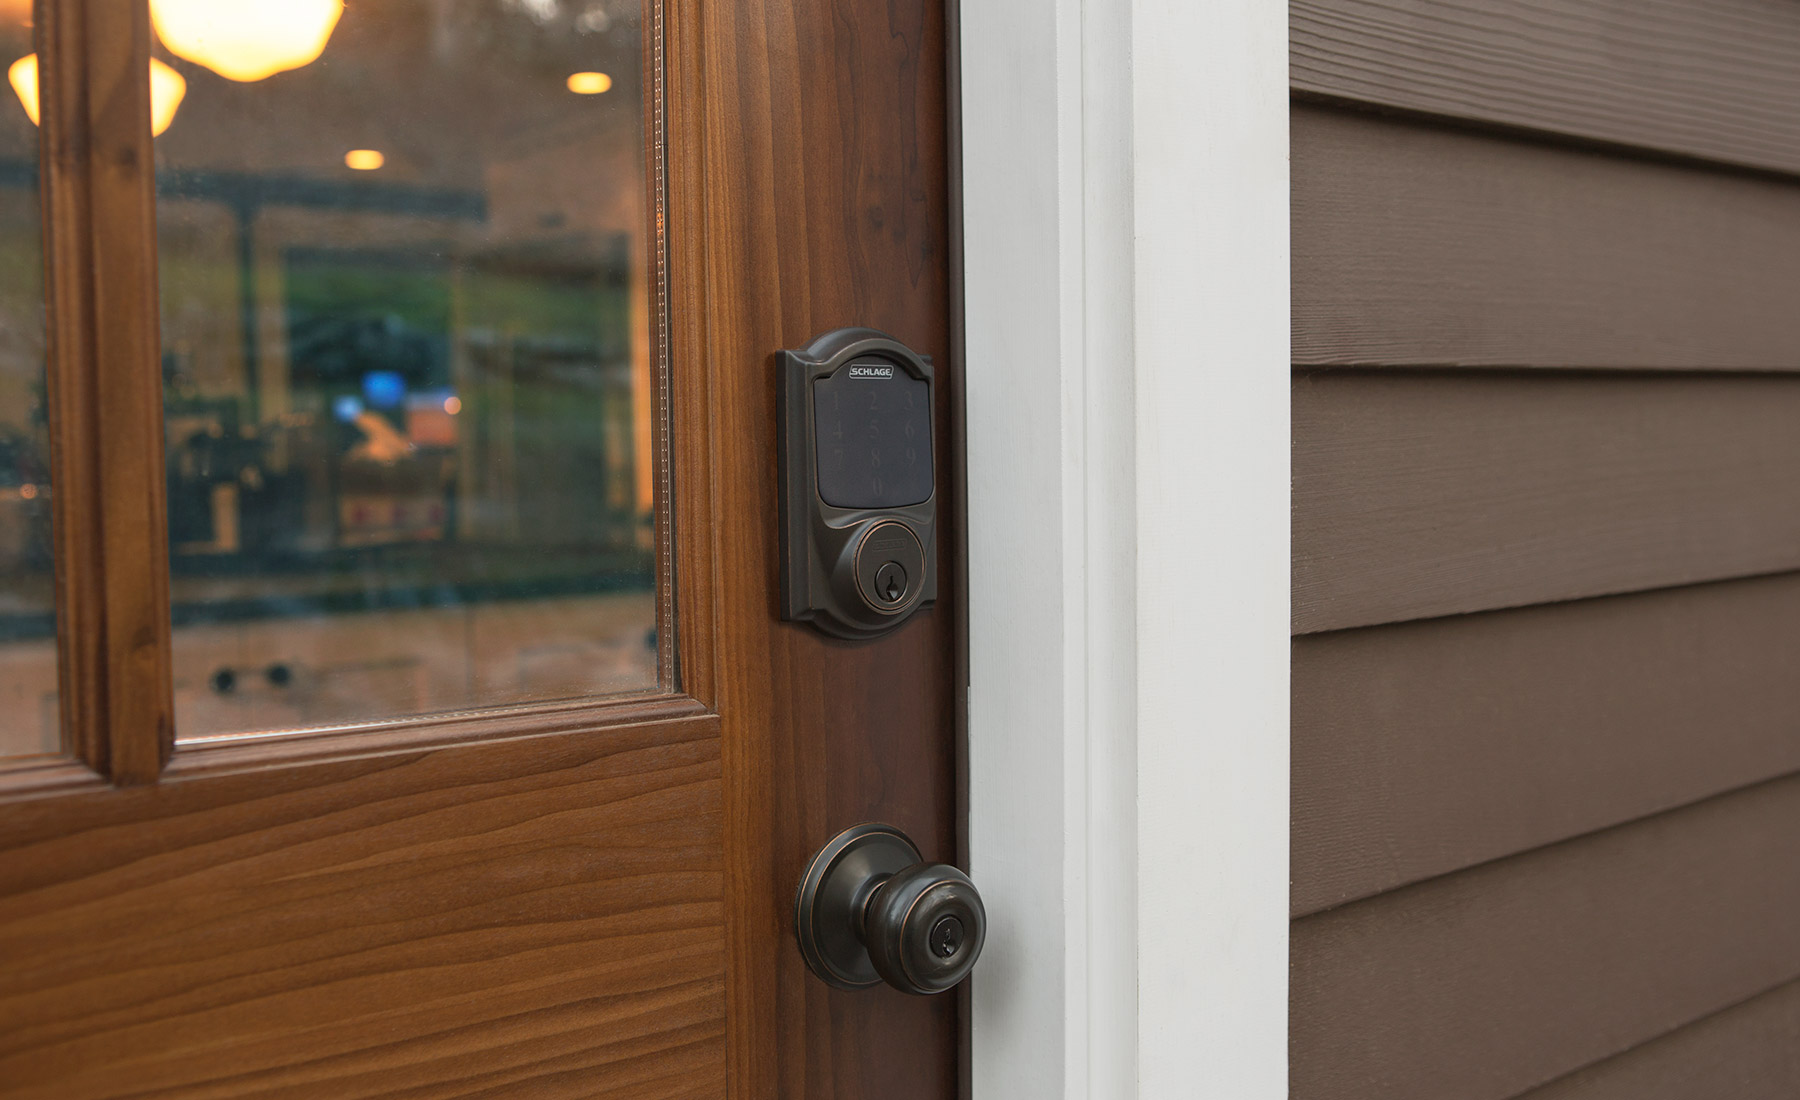 Satin Nickel & Wink | Schlage Connect Camelot Touchscreen Deadbolt